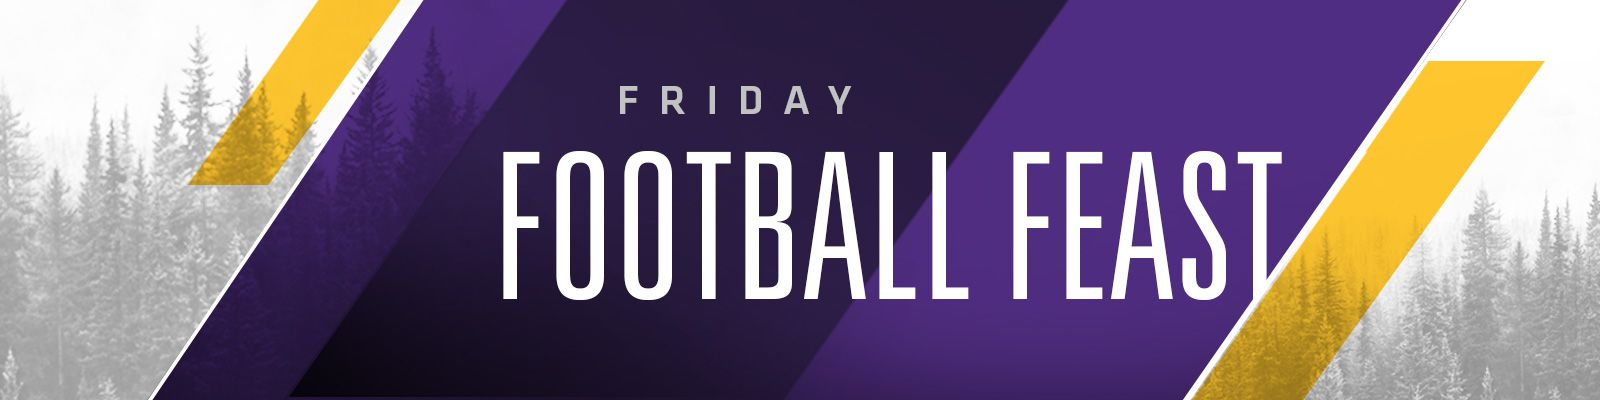 FRIDAY_FOOTBALL_FEAST_1600x400_v1_current